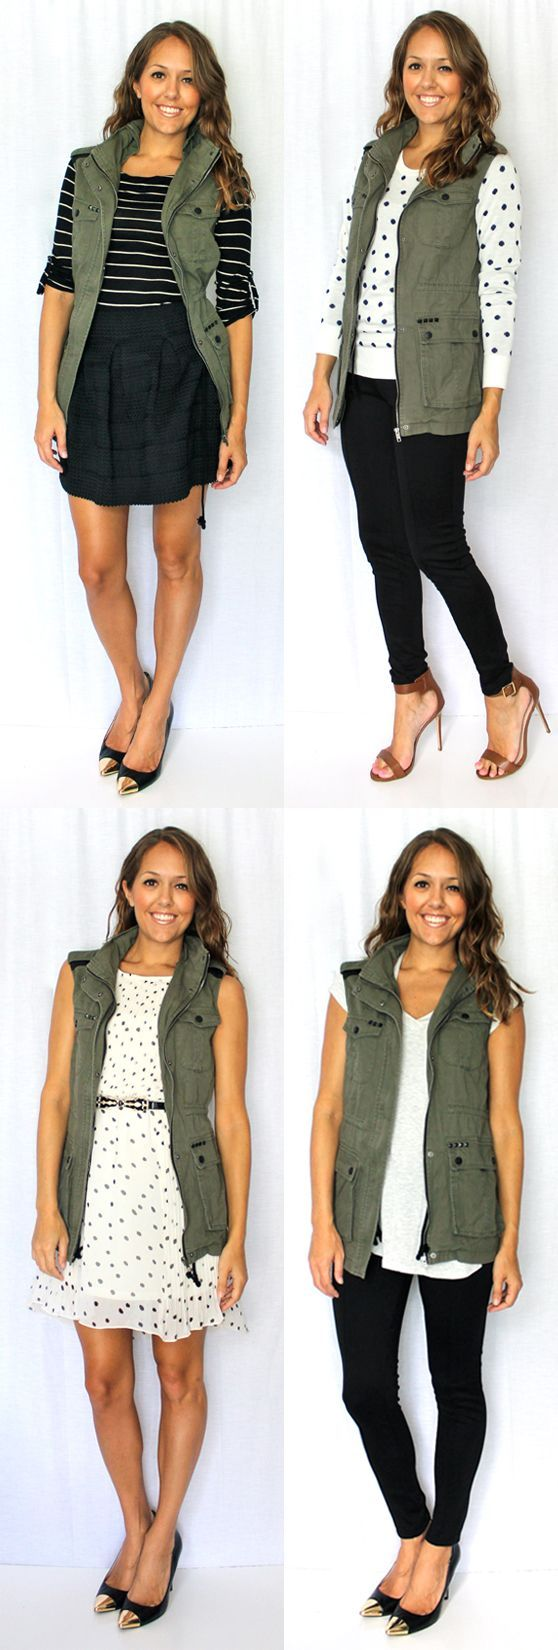 Must have for fall: Army Vest from J